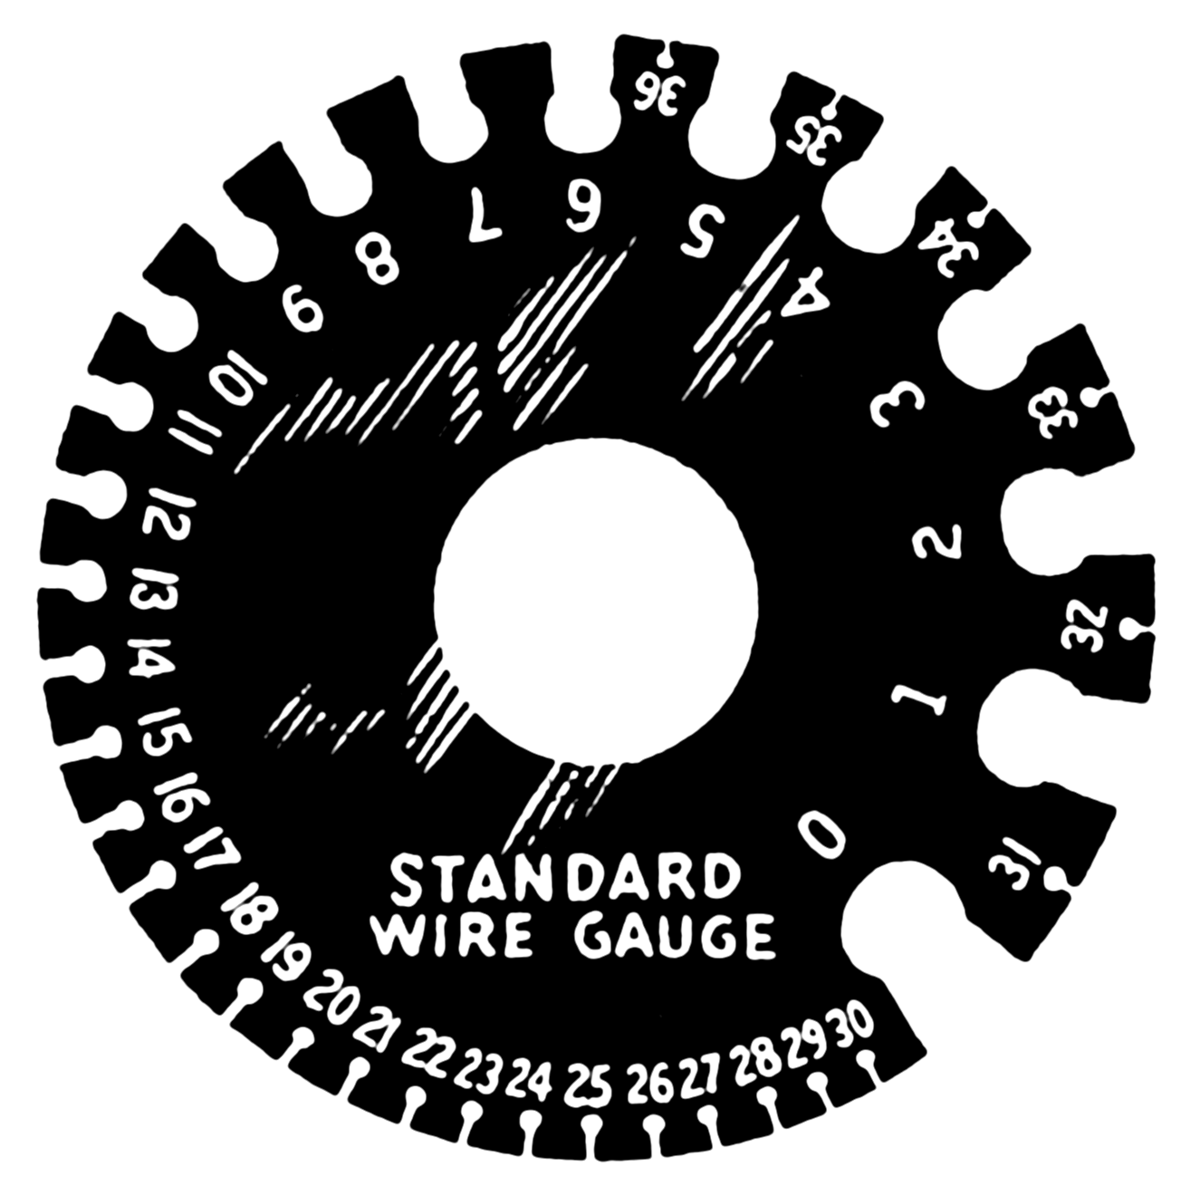 Standard wire gauge wikipedia greentooth Image collections